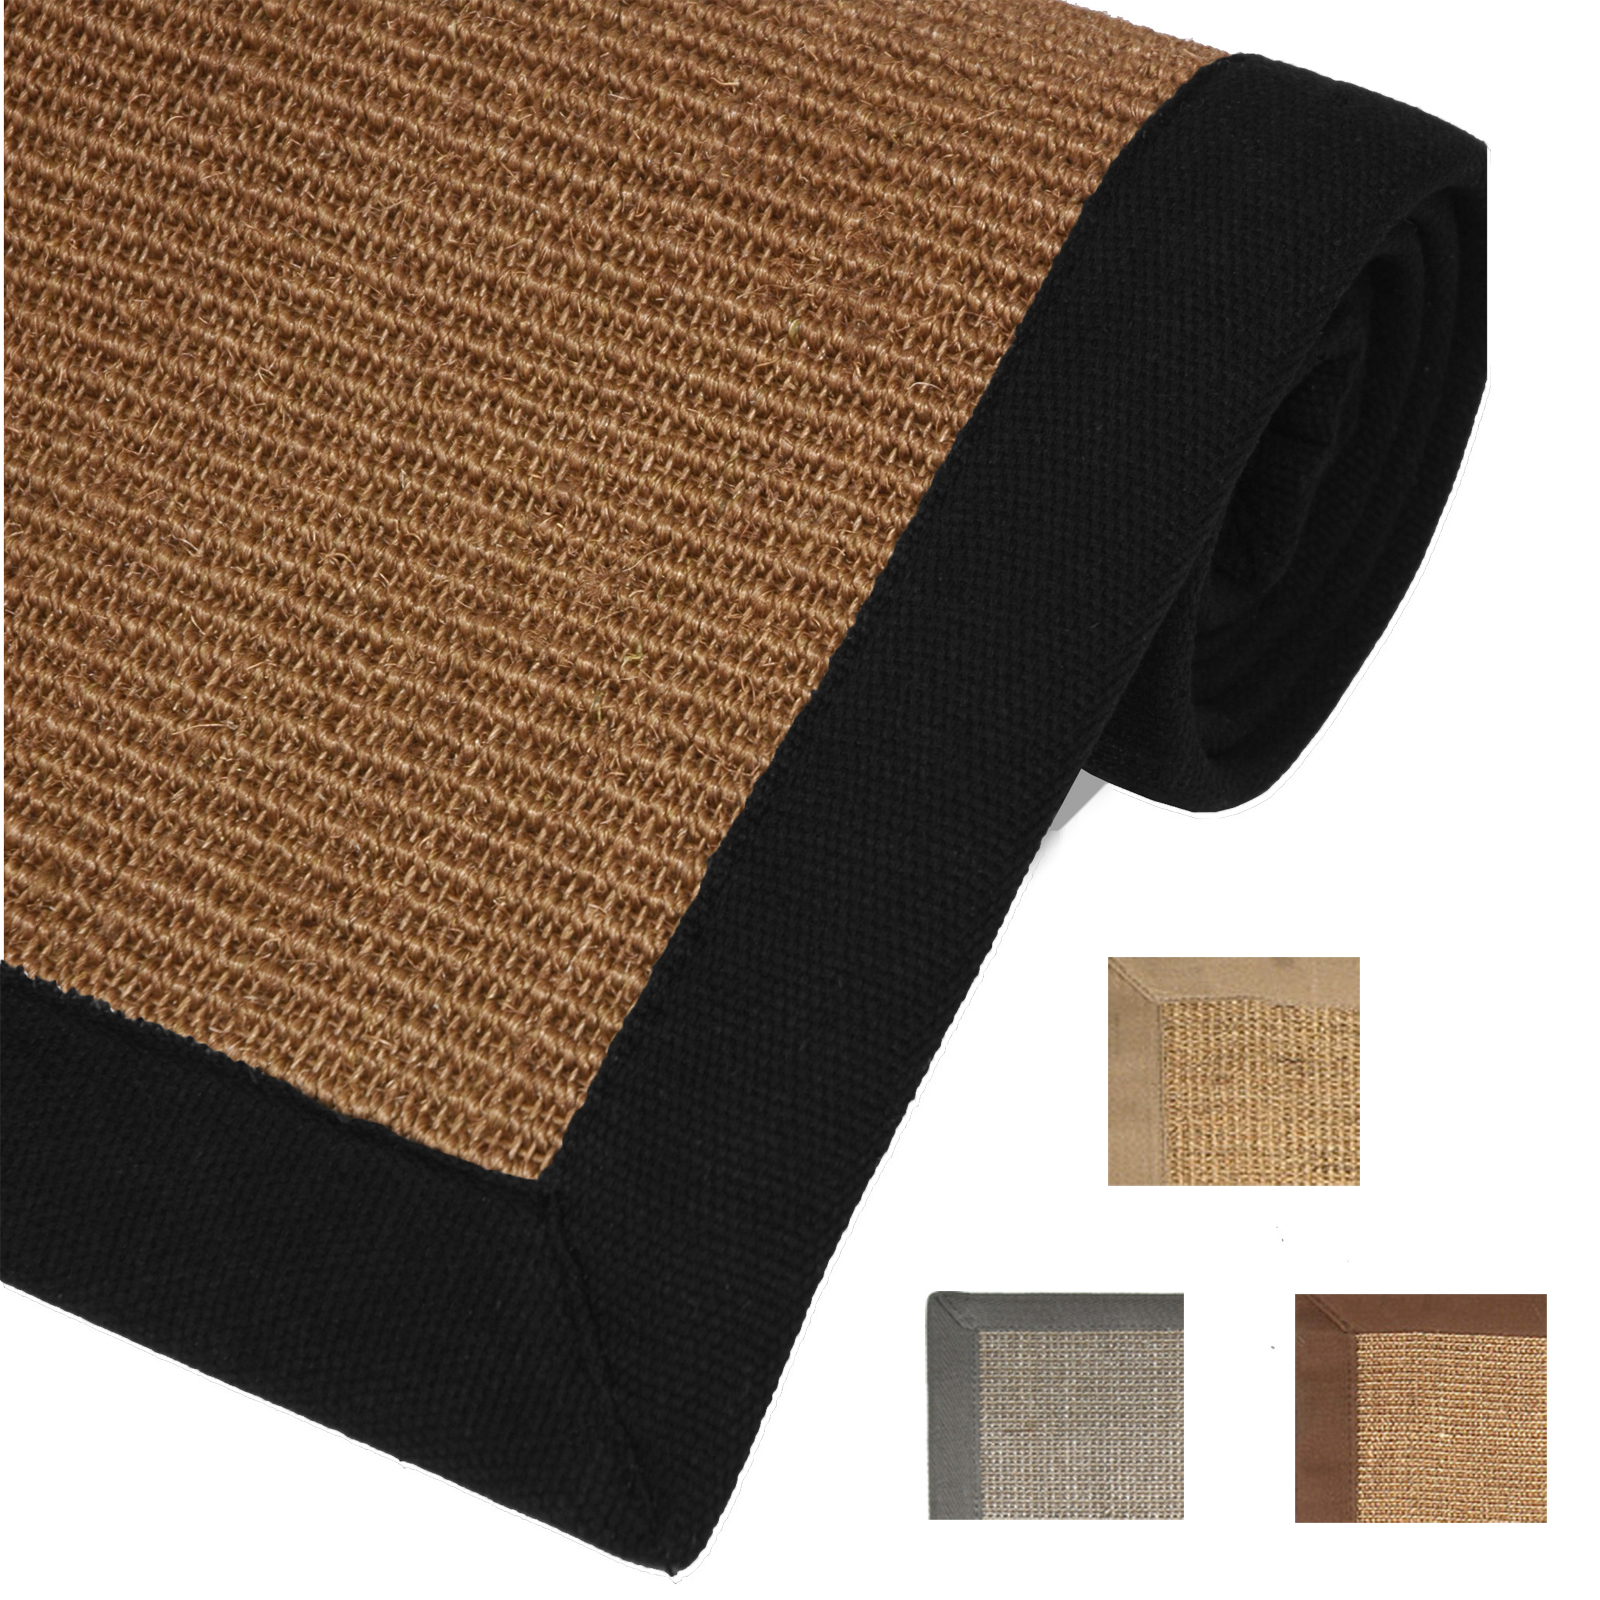 sisal rugs 100 natural fiber seagrass area rug casual border accent mat carpet